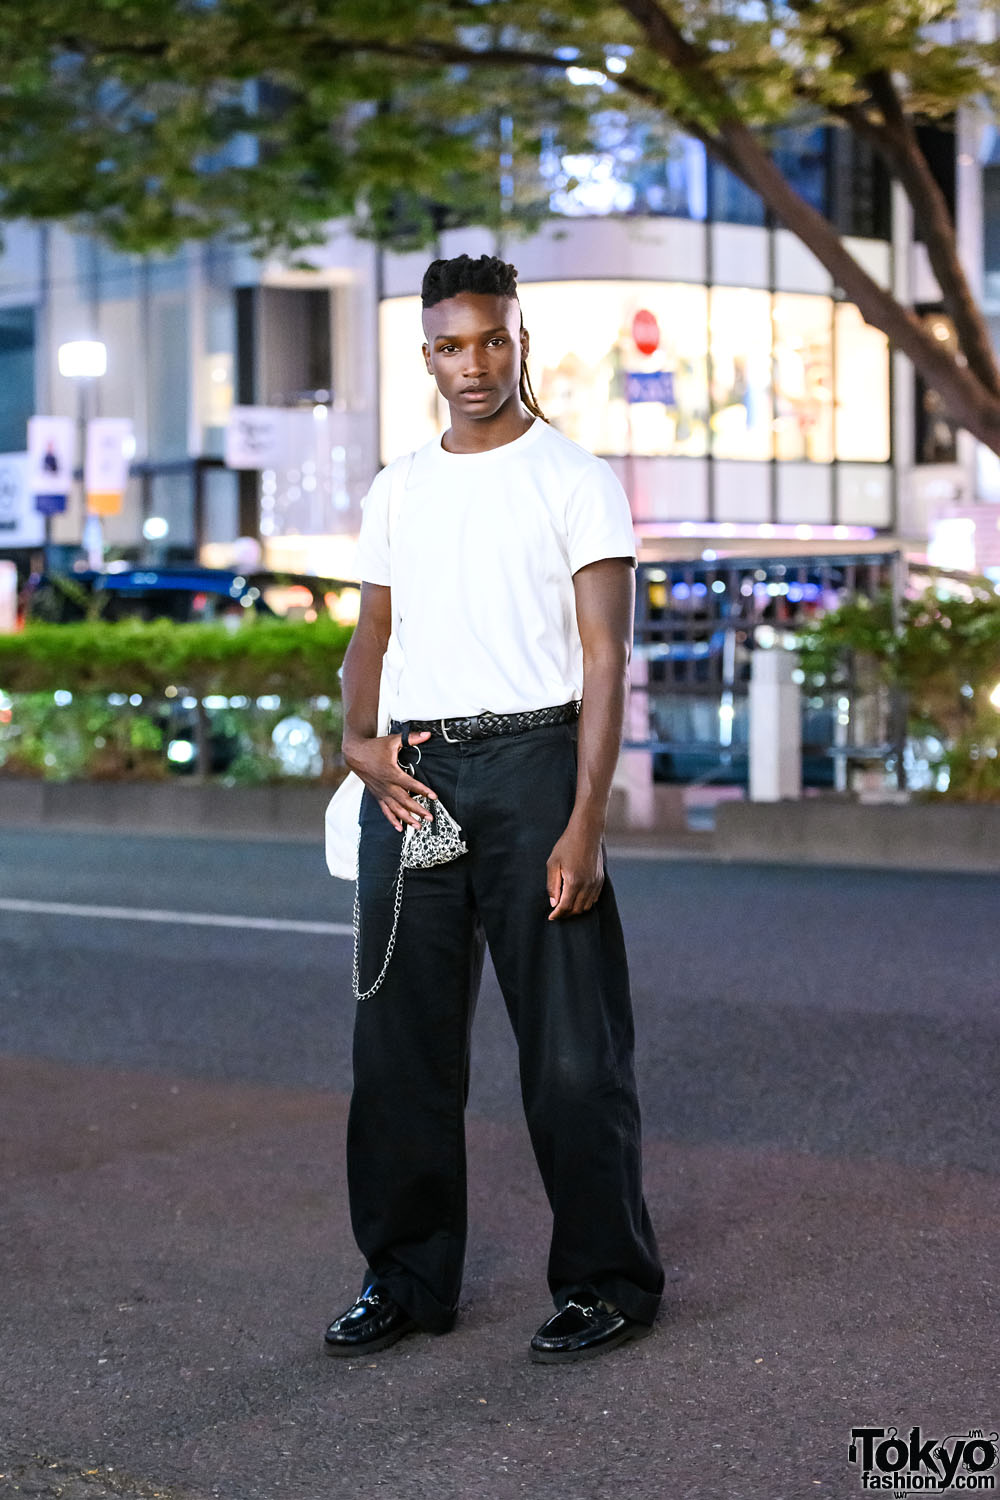 Fashion Model Joseph Oxley On The Street in Tokyo w/ Monochrome Style, IKEA & Things Shop Jo Face Mask